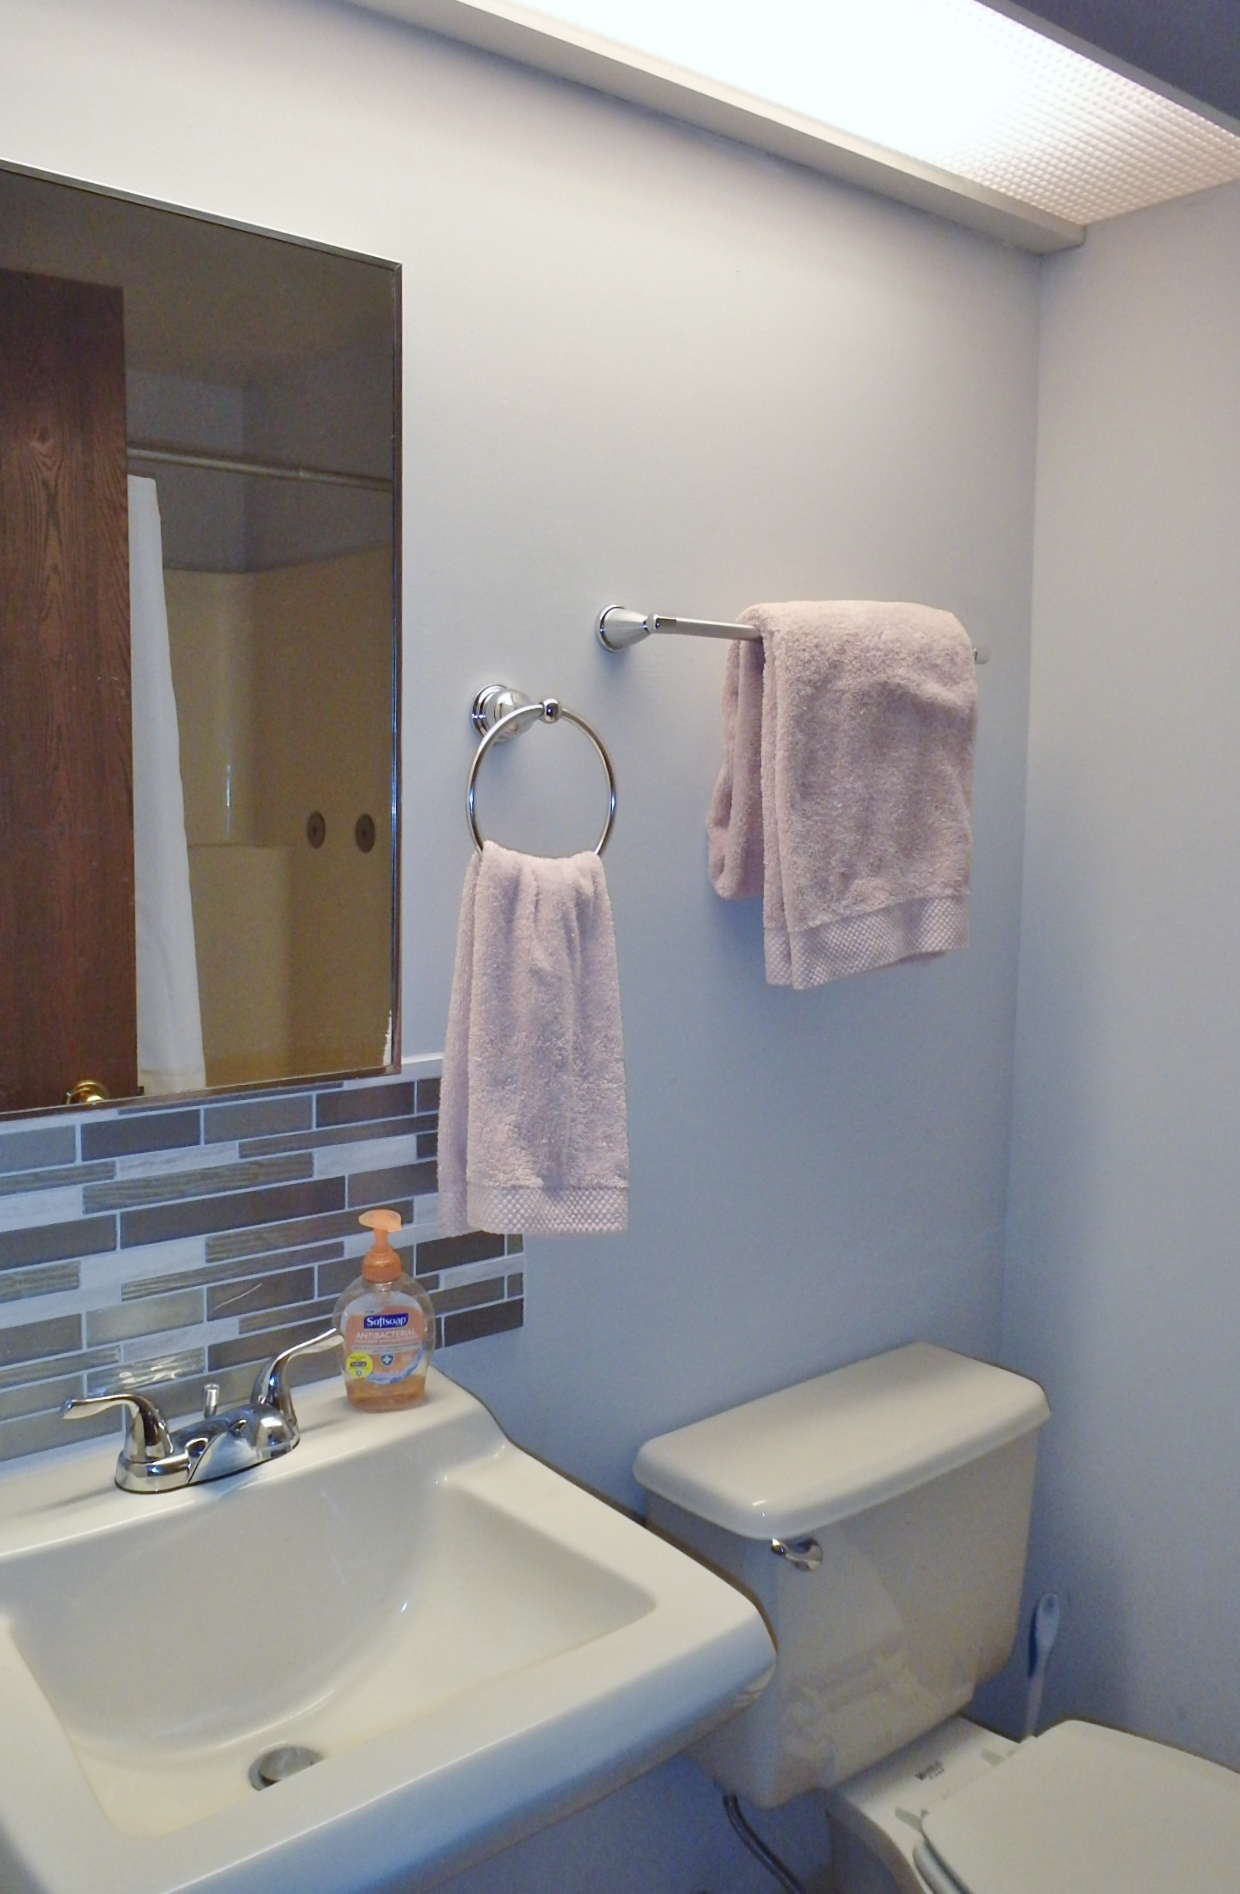 Bathroom with shower at 1606 Blue Course Drive.